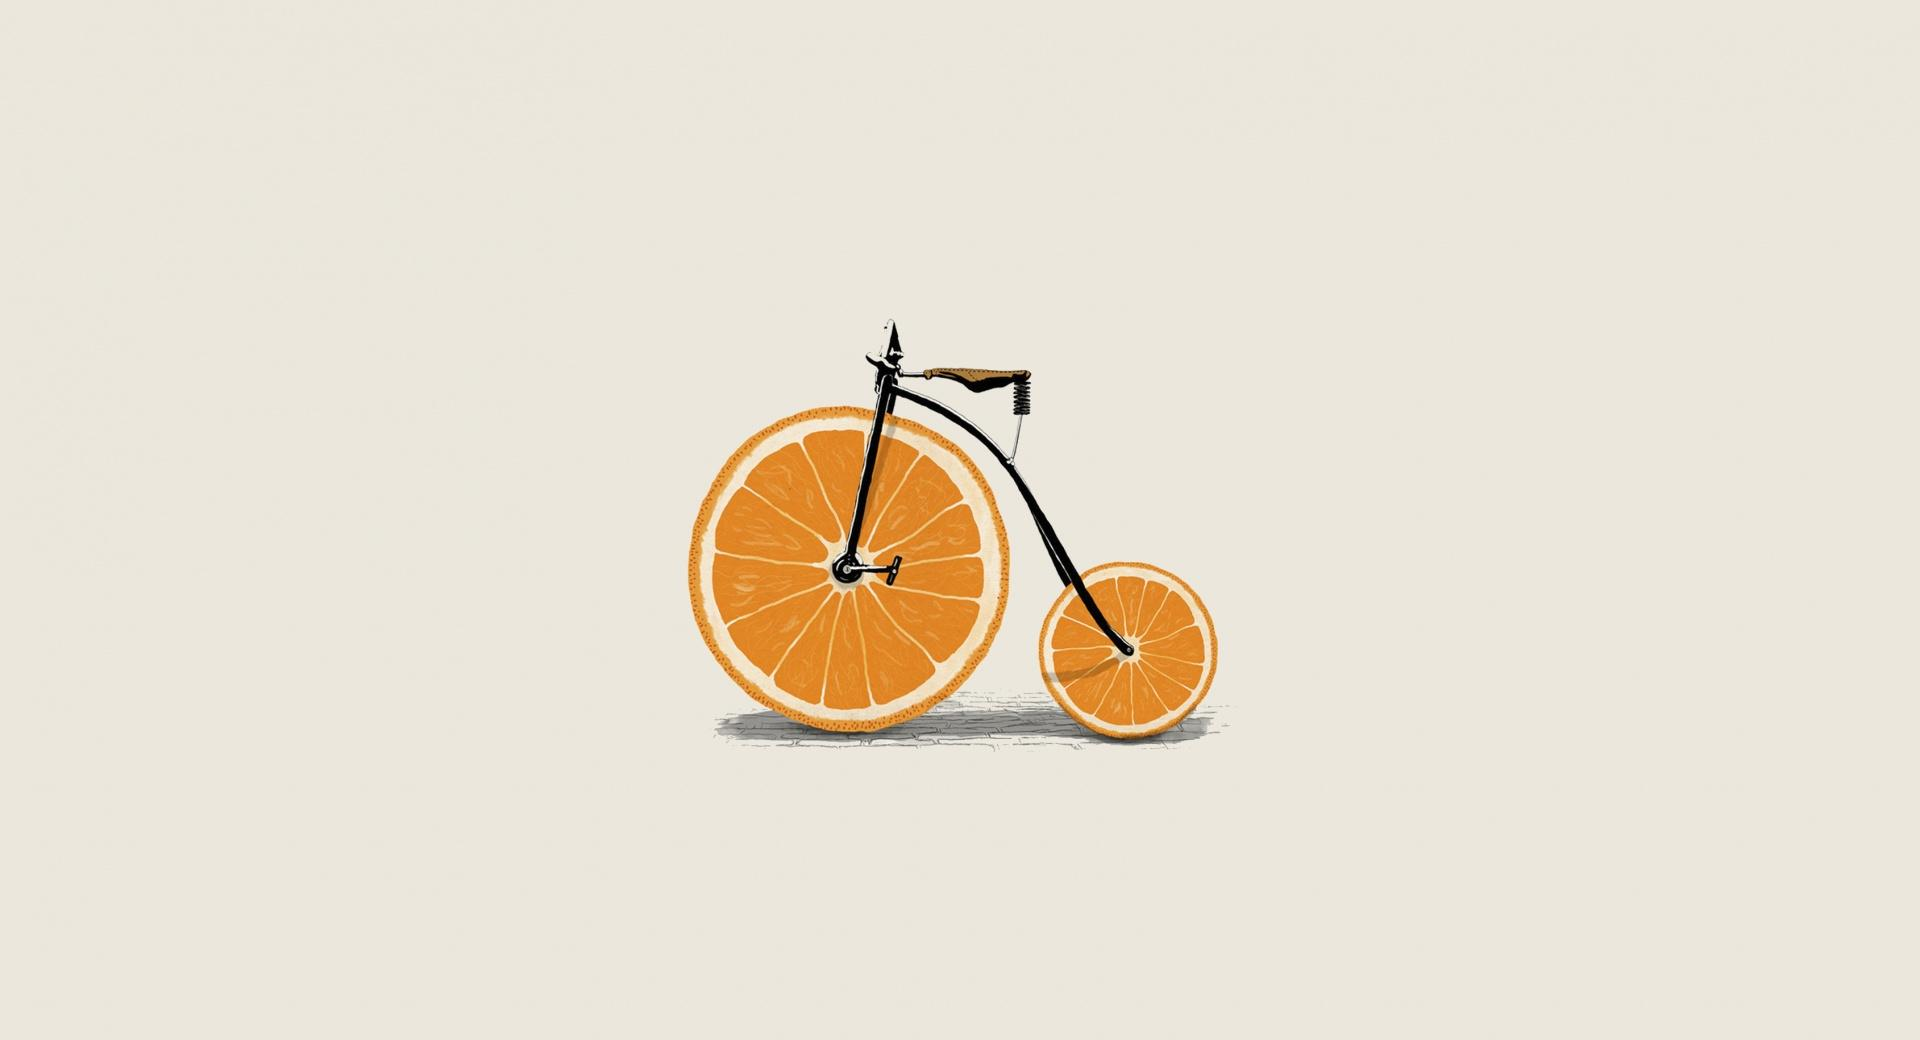 Orange Bicycle wallpapers HD quality